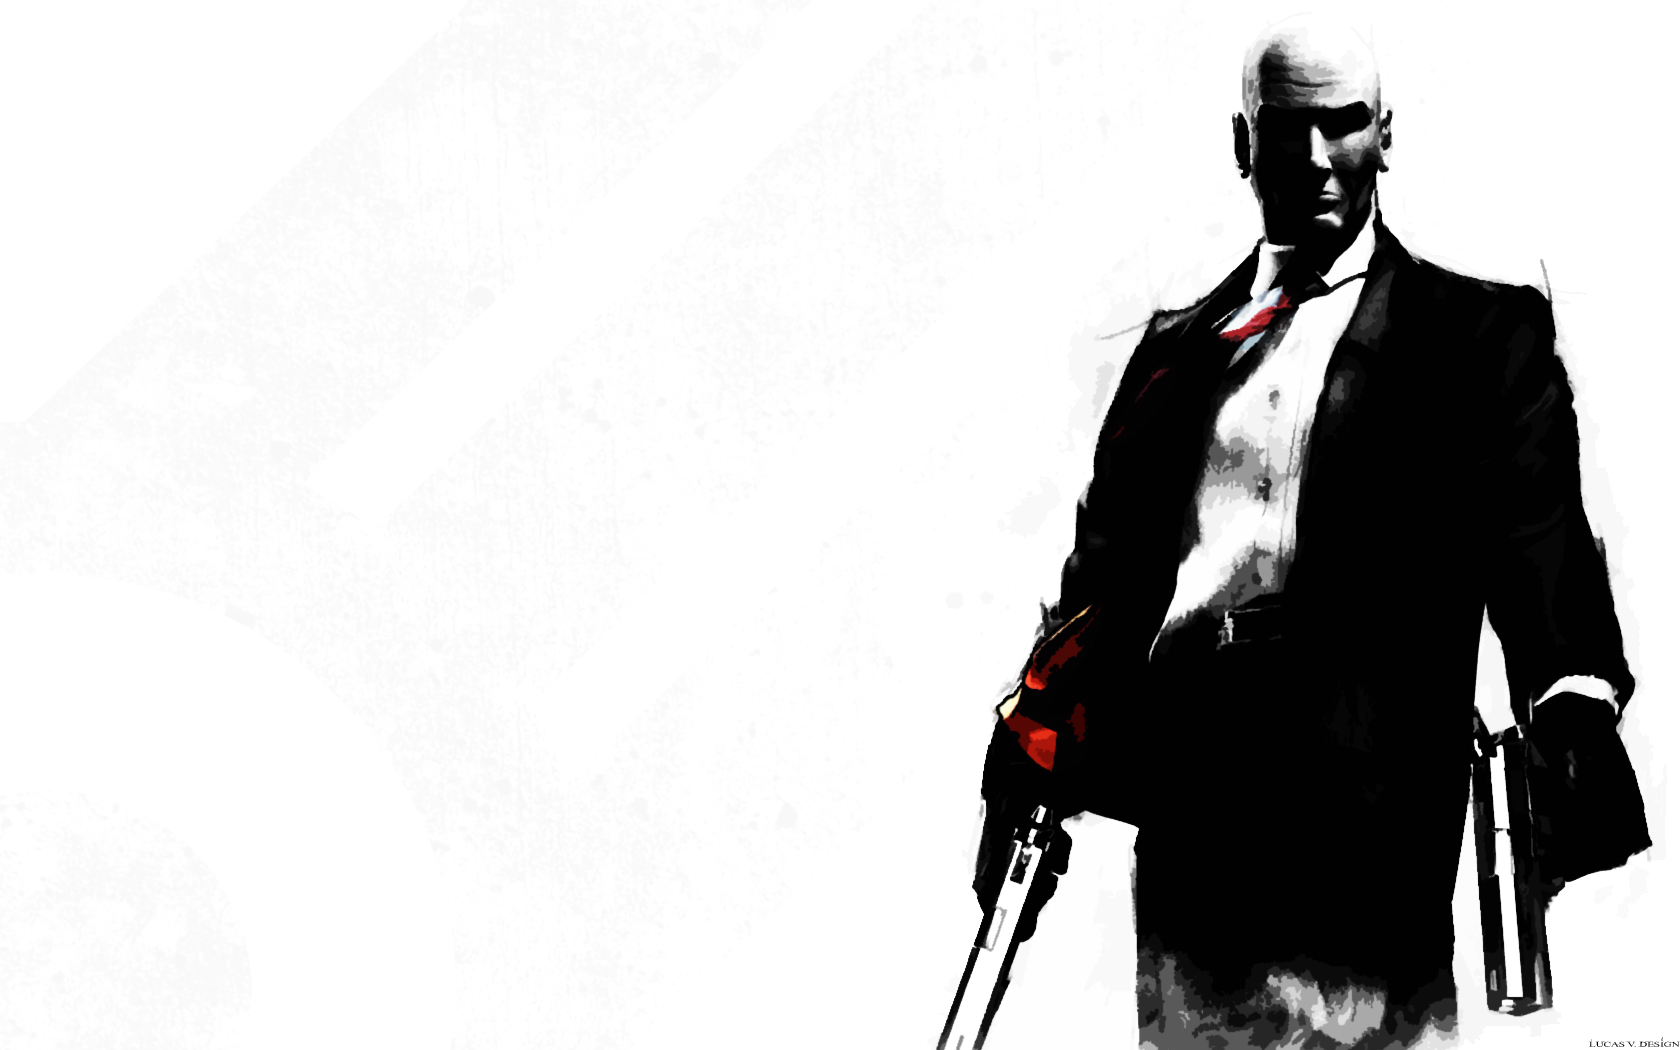 hitman wallpaper and background | 1680x1050 | id:50255